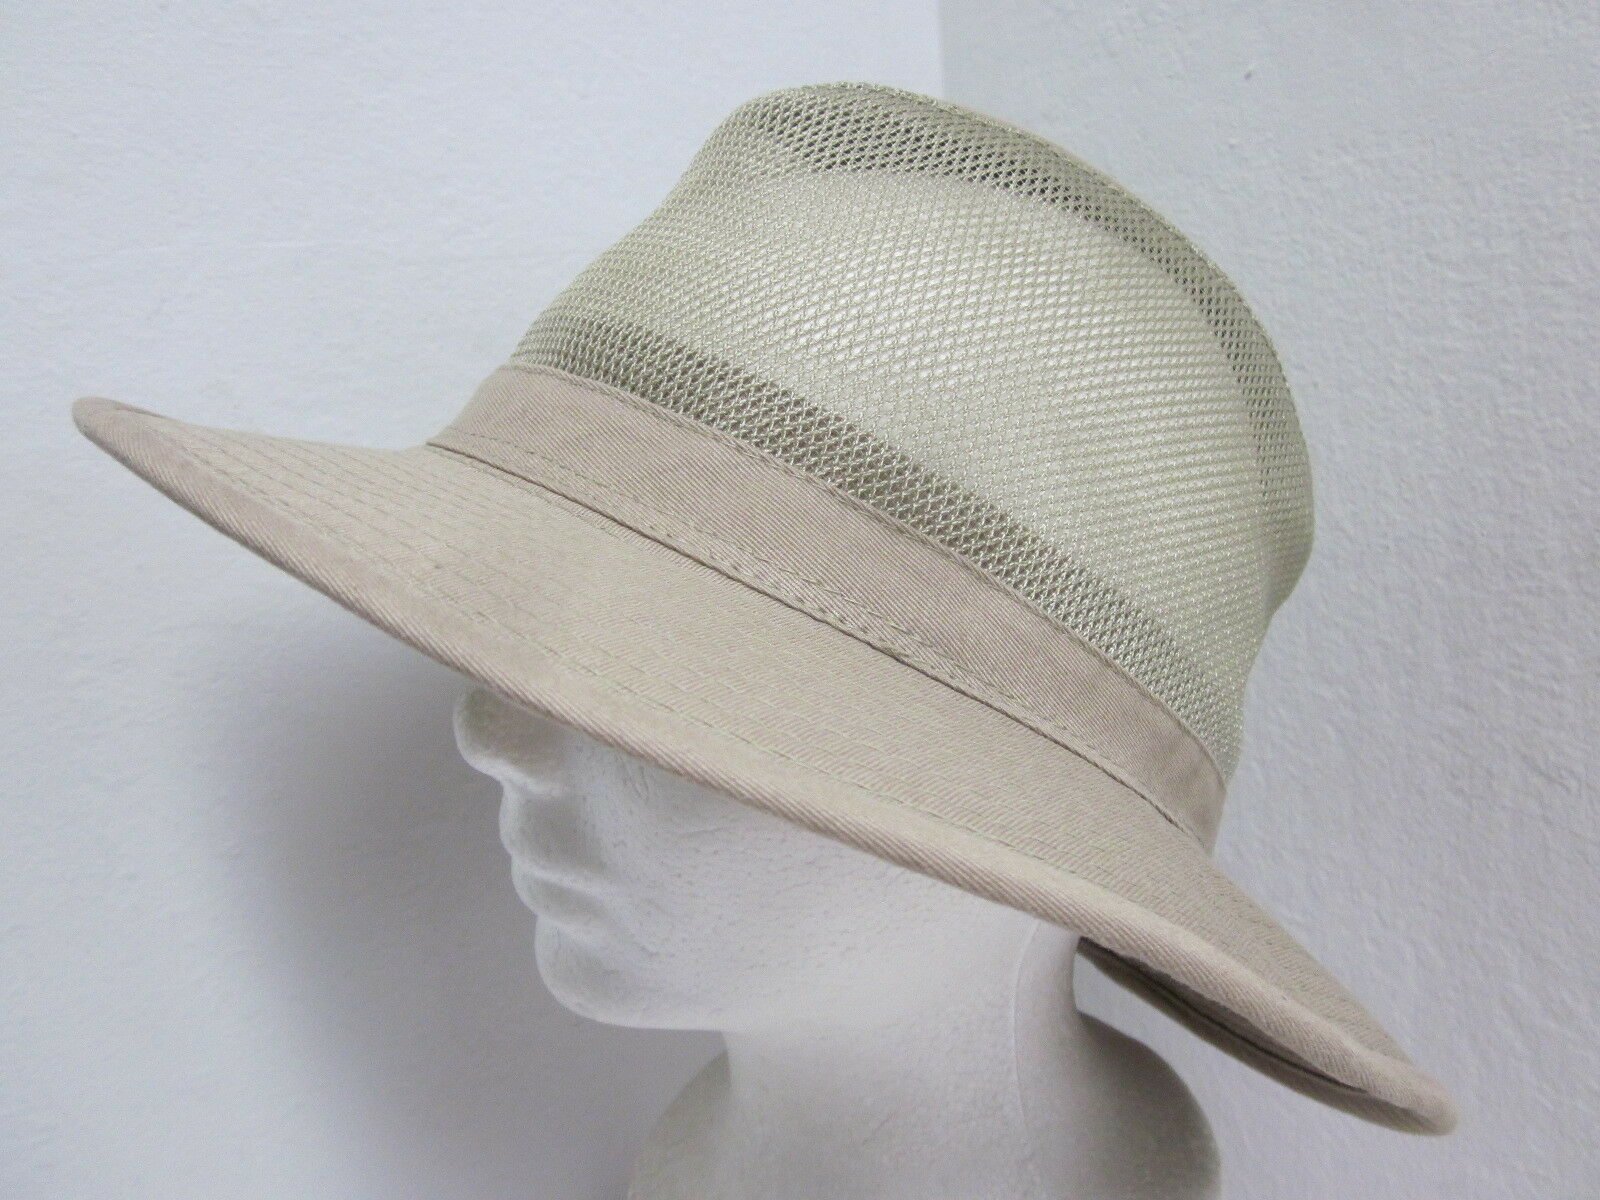 New Medium Scala Cotton - Canvas Breezer Hat - Crushable - Cotton Beige 543c58